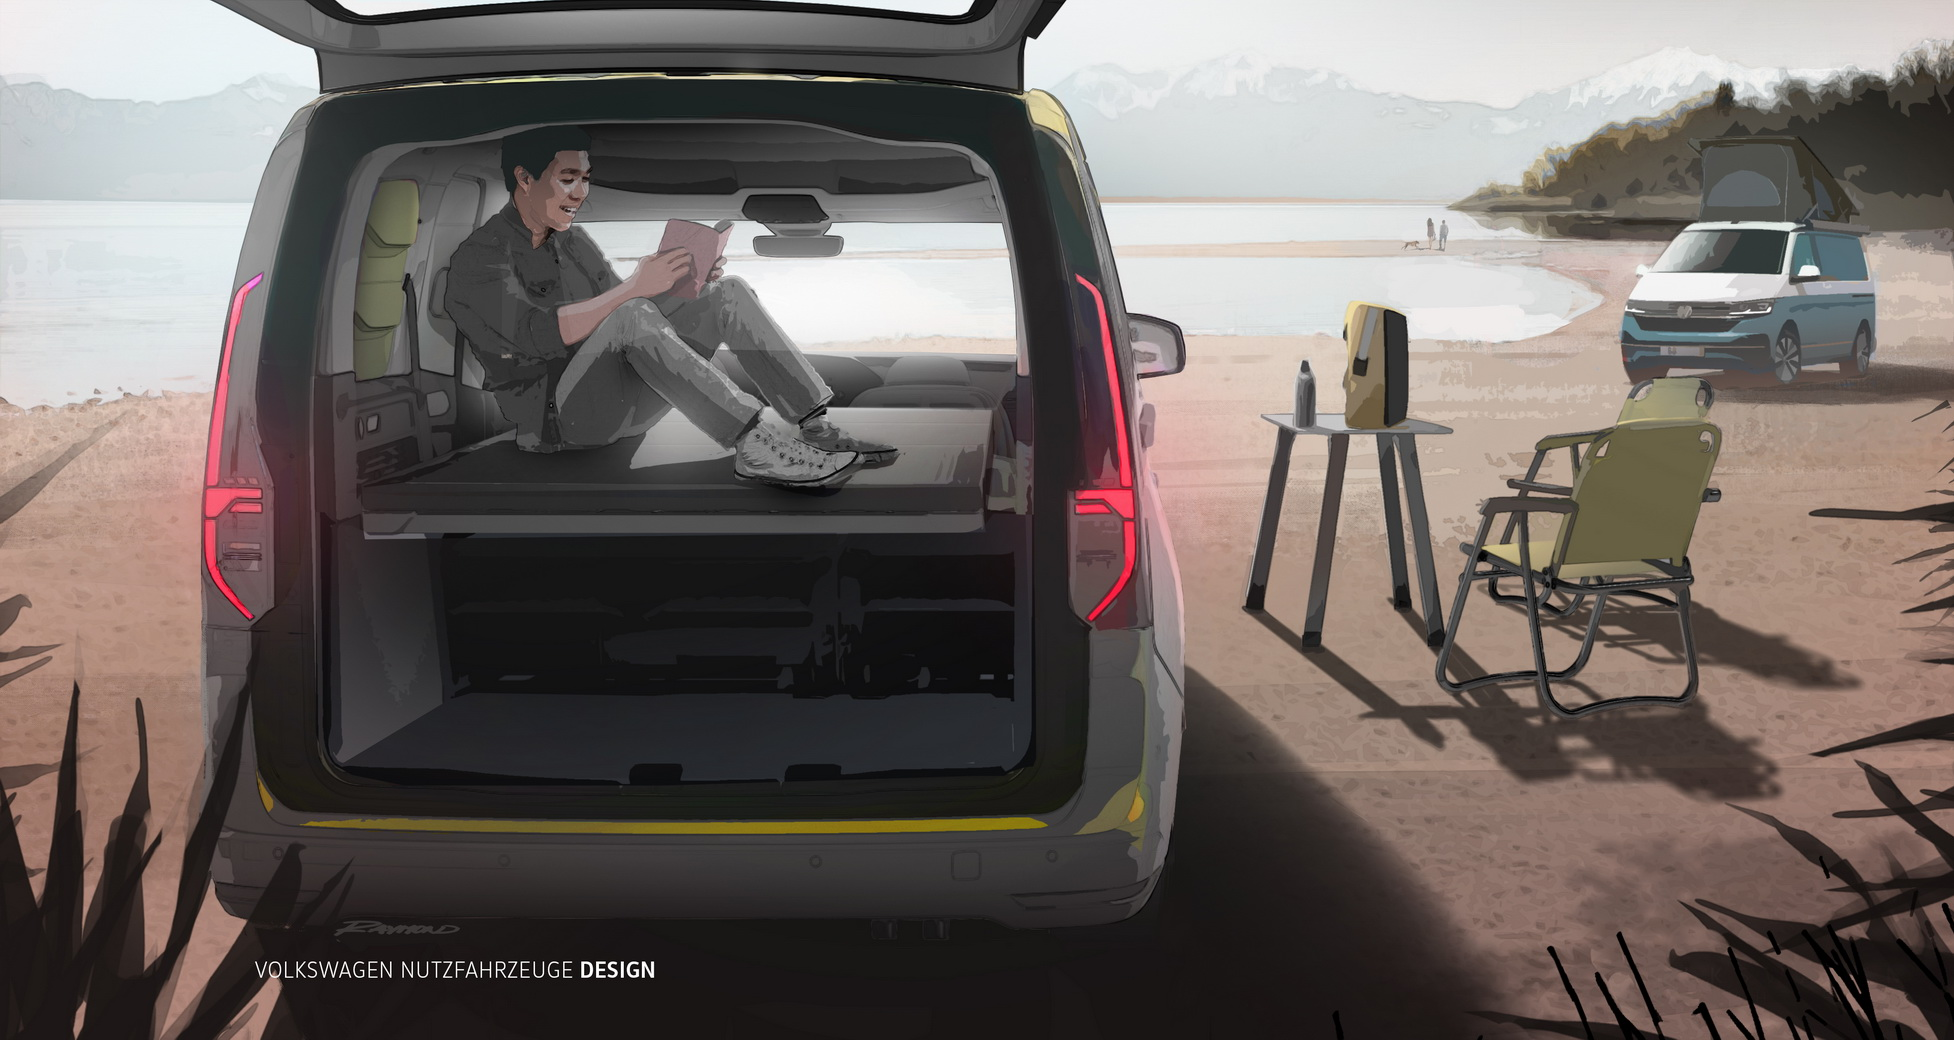 Volkswagen has announced the Mini-Camper version of its Caddy van. The car seems to pack everything to cover your basic needs during long road trips, including a two-meter bed.